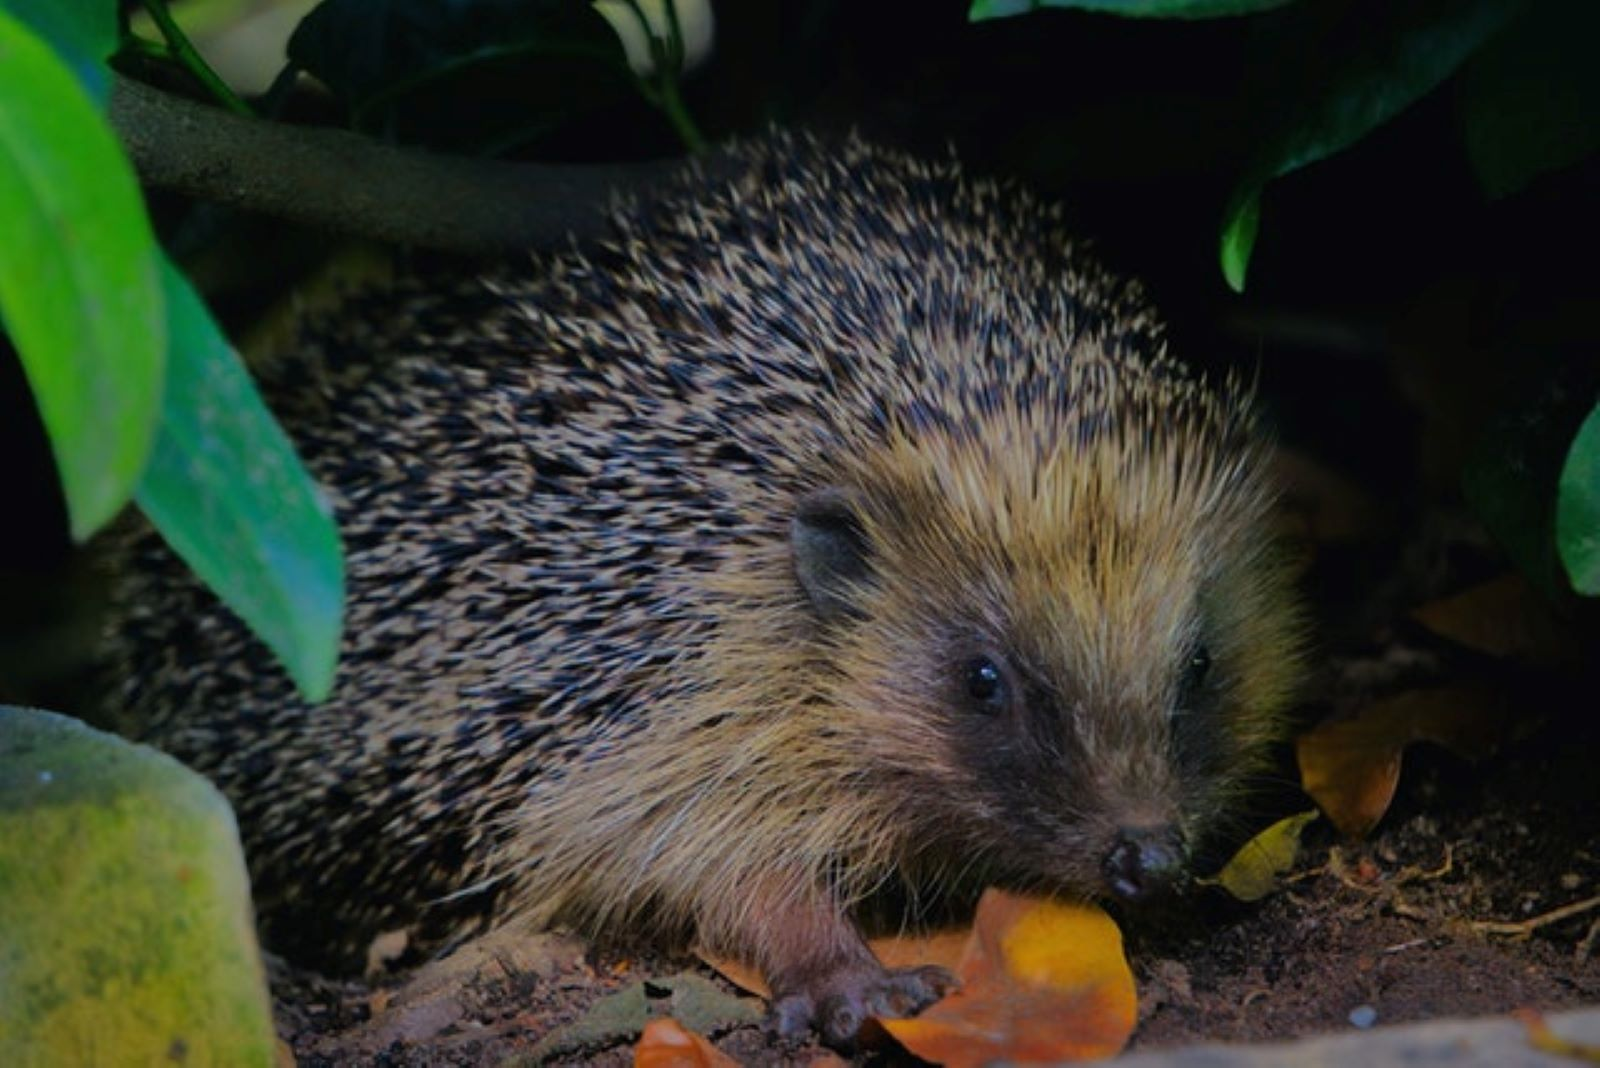 A Talk on Hedgehogs